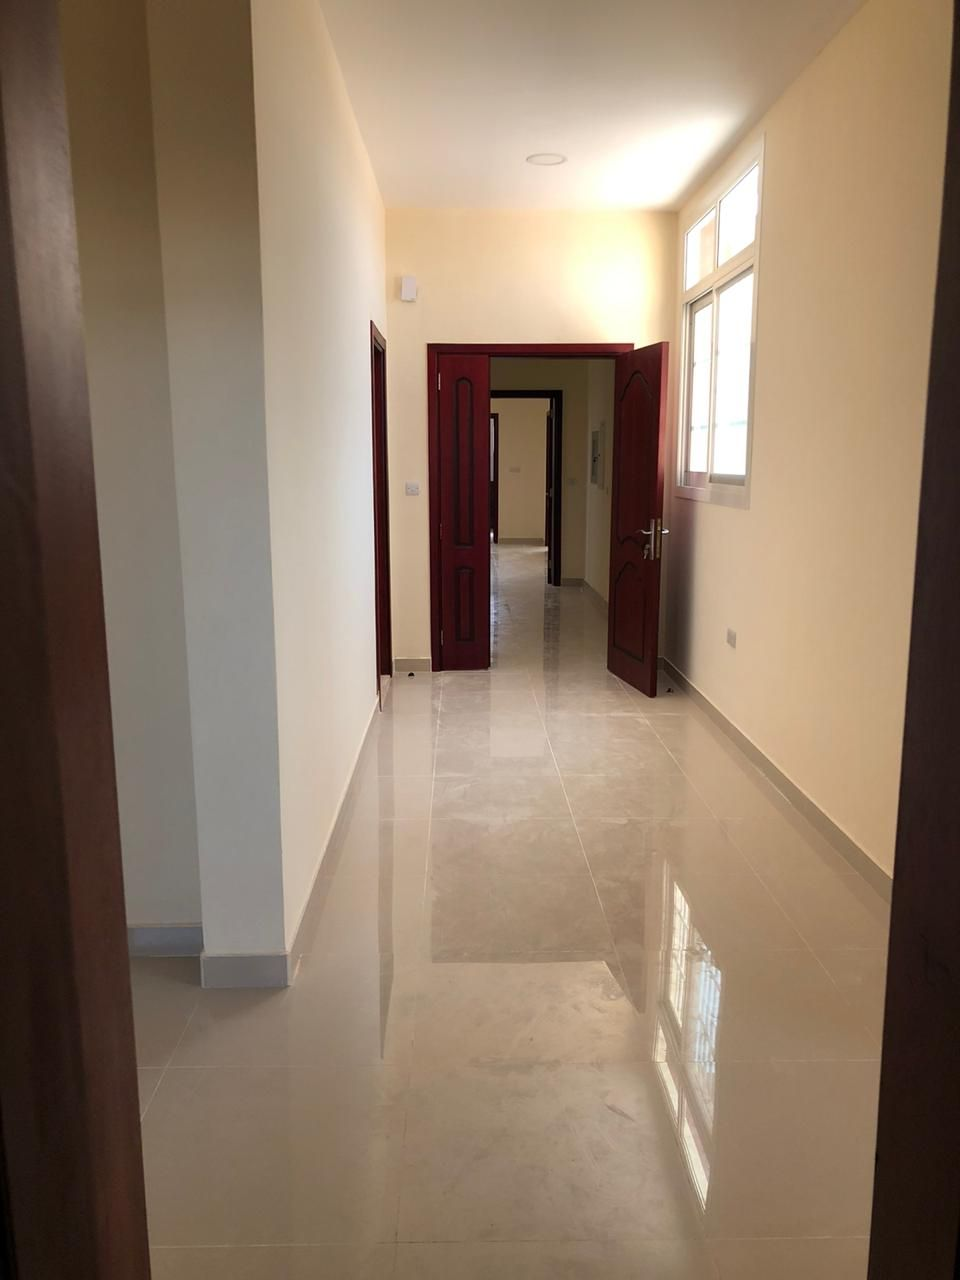 SUPER DELUXE BRAND NEW 2 BED ROOM HALL APARTMENT FOR RENT IN AL-SHAMKHAH